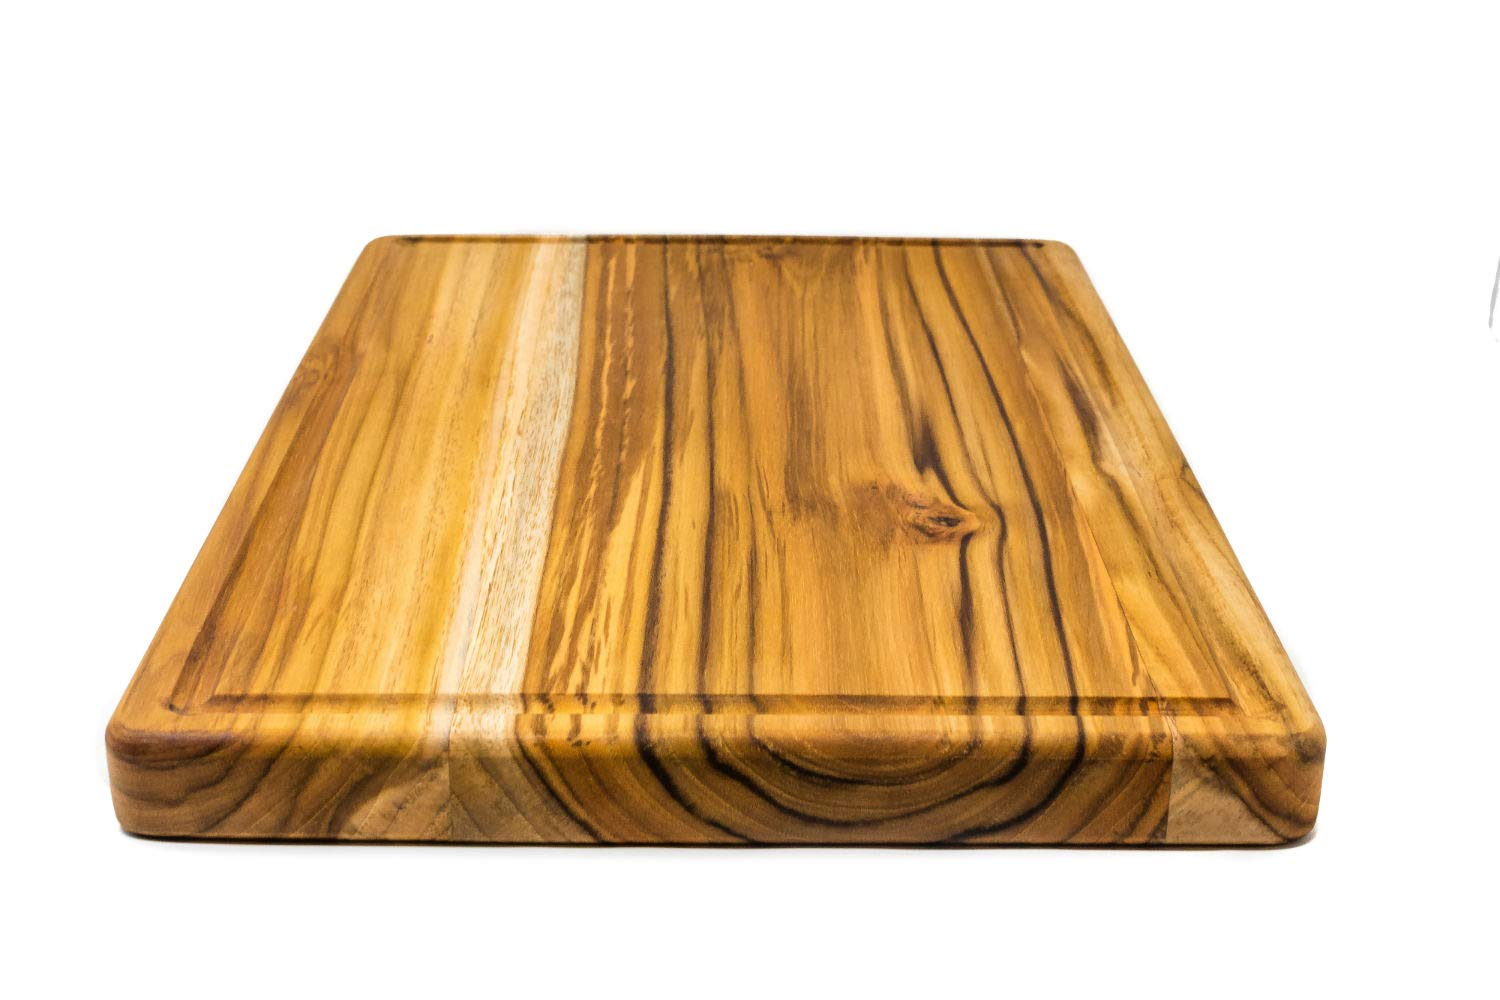 Large Reversible Teak Wood Cutting Board with Juice Groove - Hardwood Chopping Block and Serving Tray (17x11x1 Inches) by Do it wiser (Image #5)